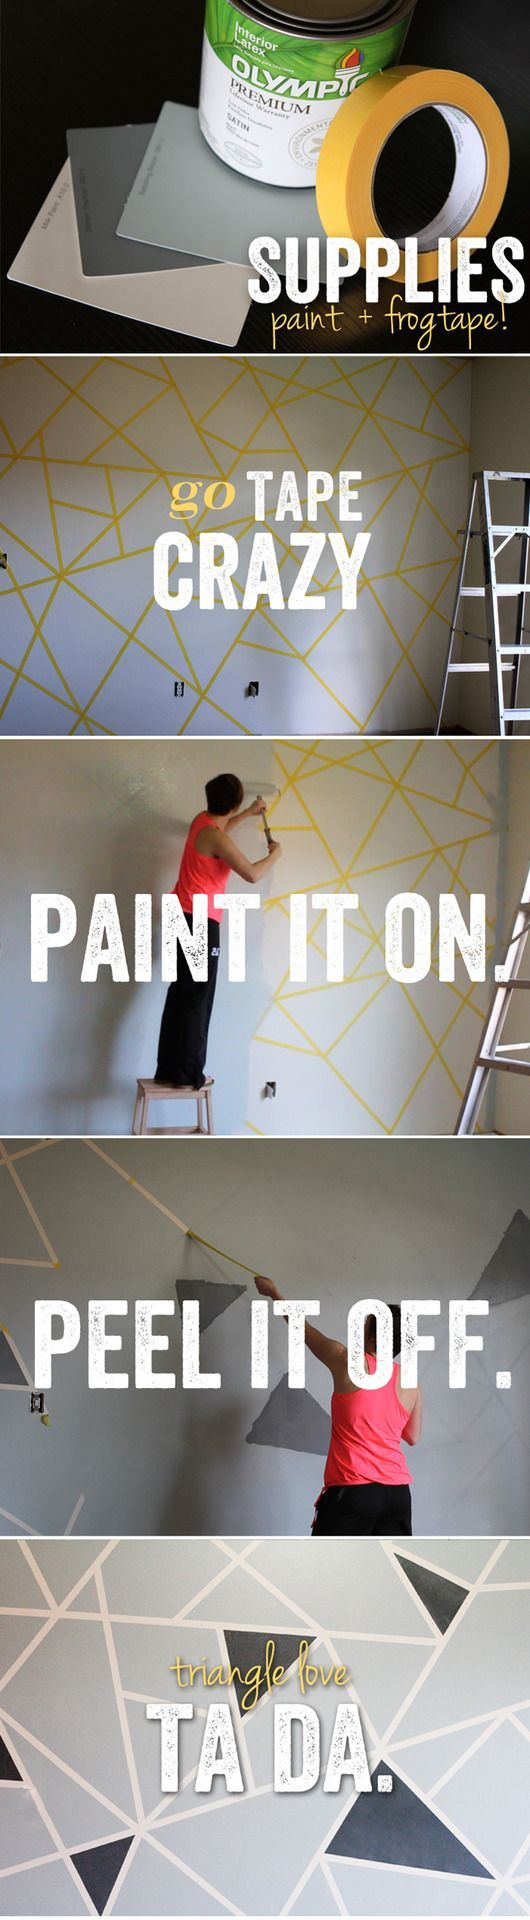 DIY Peindre un mur avec des triangles. (http://www.deedeeparis.com/blog/ma-week-list-72?utm_source=feedburner&utm_medium=feed&utm_campaign=Feed:+deedeeparis+(Deedee+Paris))